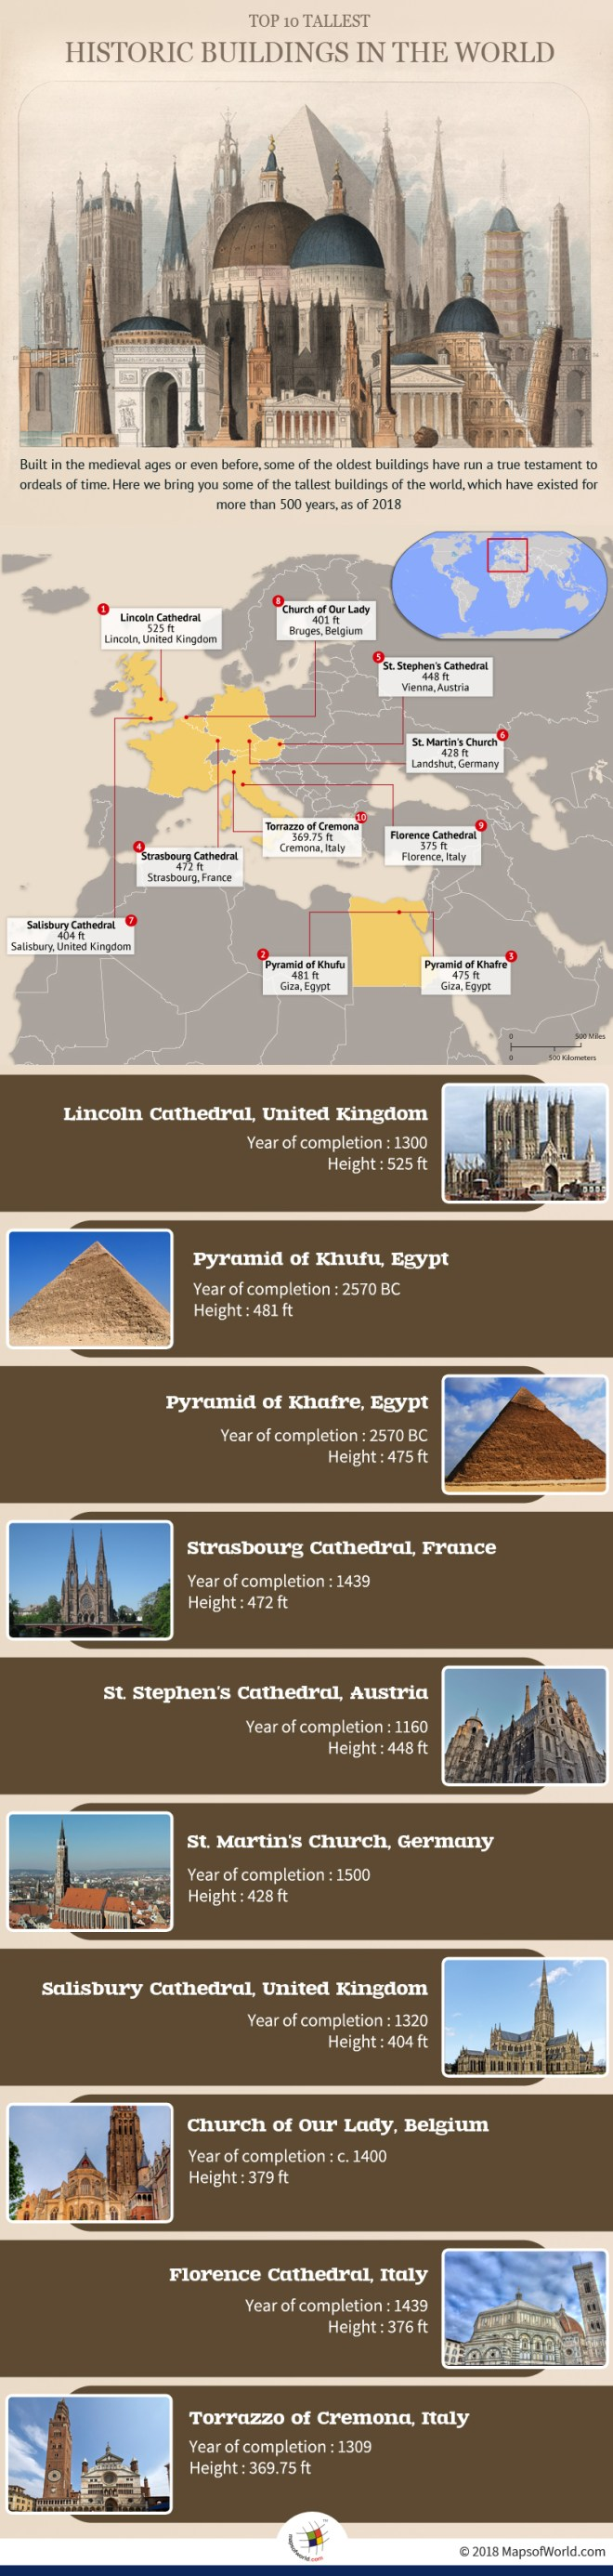 Infographic mentioning the tallest buildings that have existed for more than 500 years